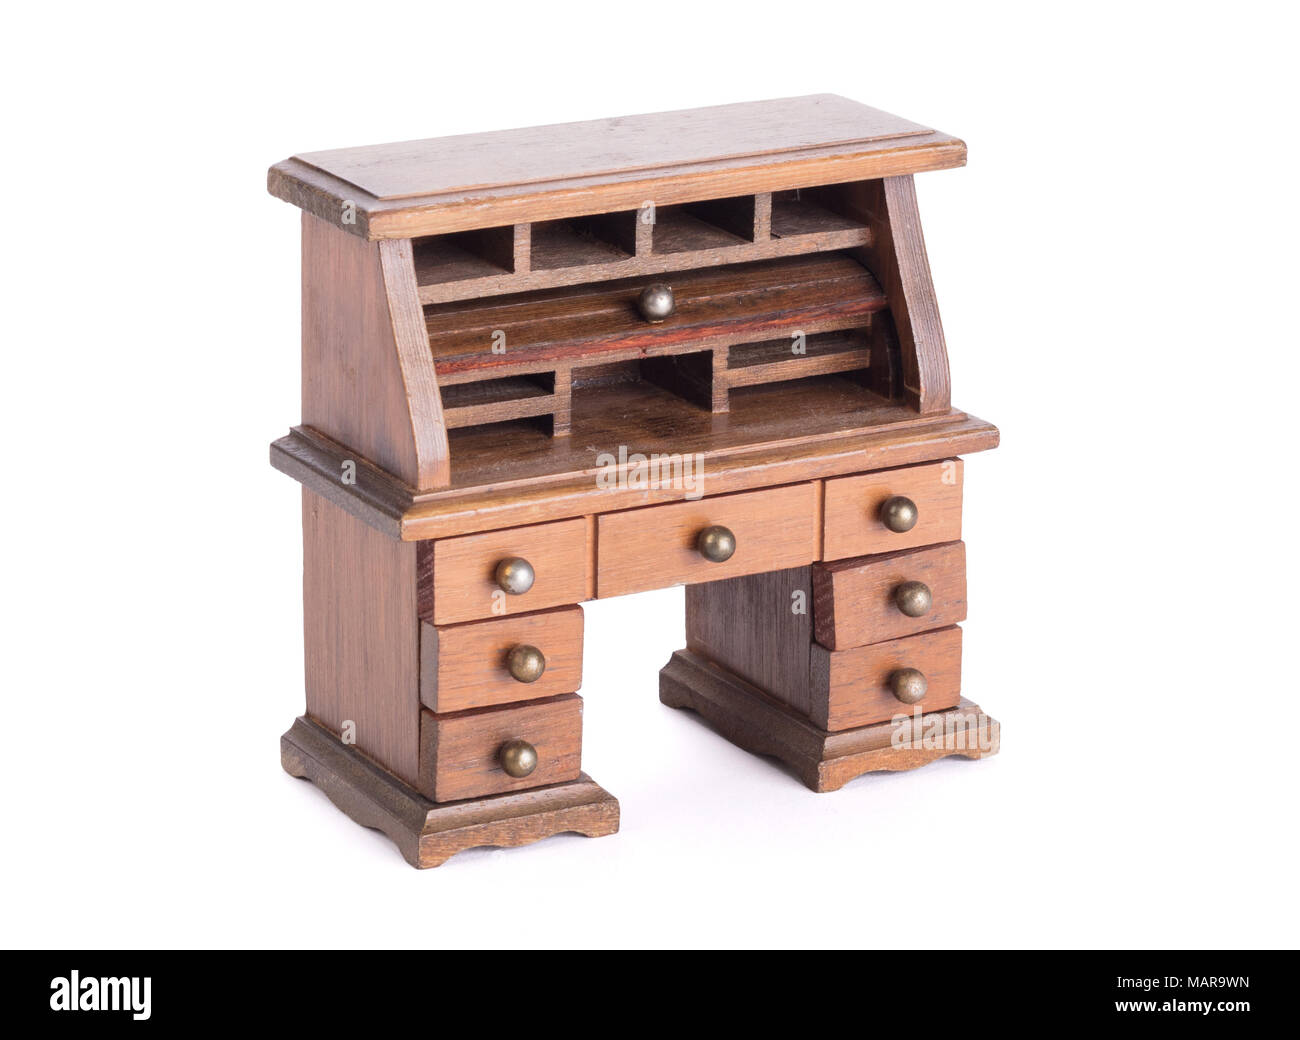 Small Vintage Wooden Desk Isolated On White Stock Photo Alamy